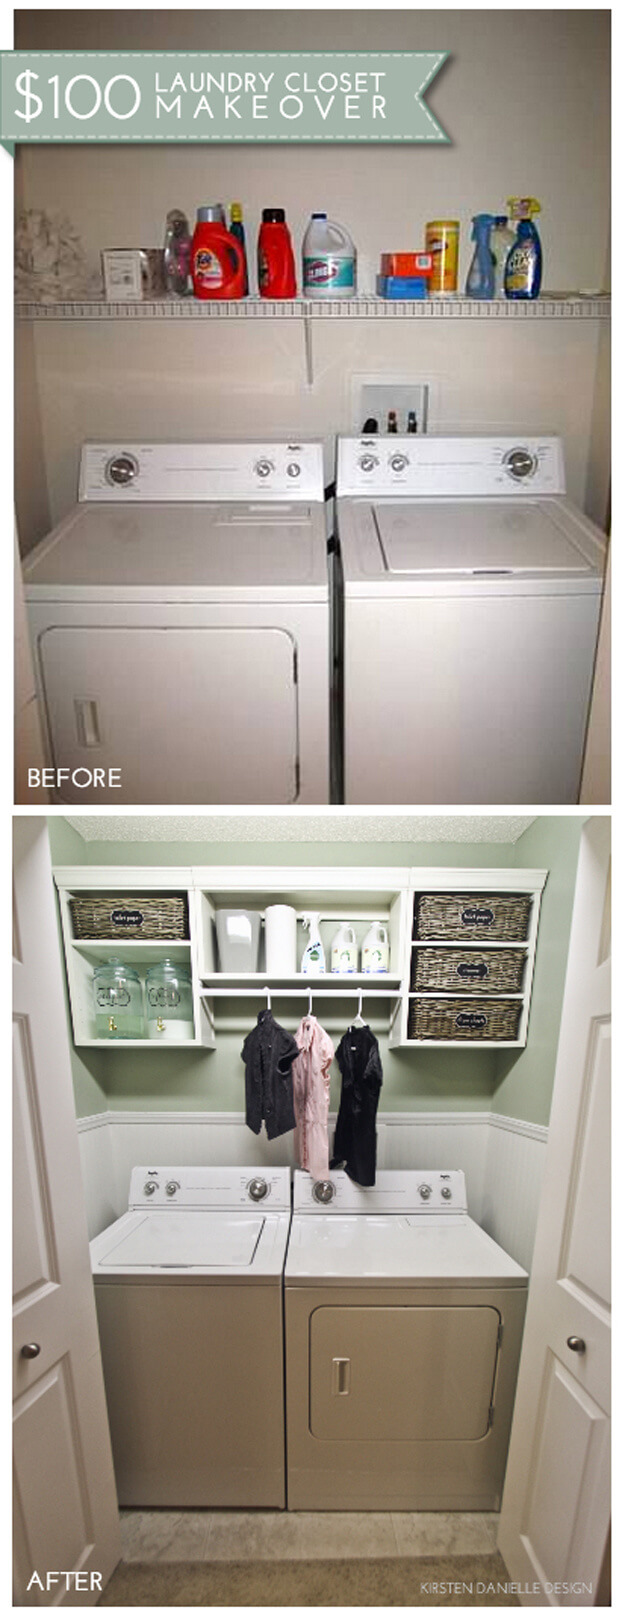 23 Best Budget Friendly Laundry Room Makeover Ideas And Designs For 2021